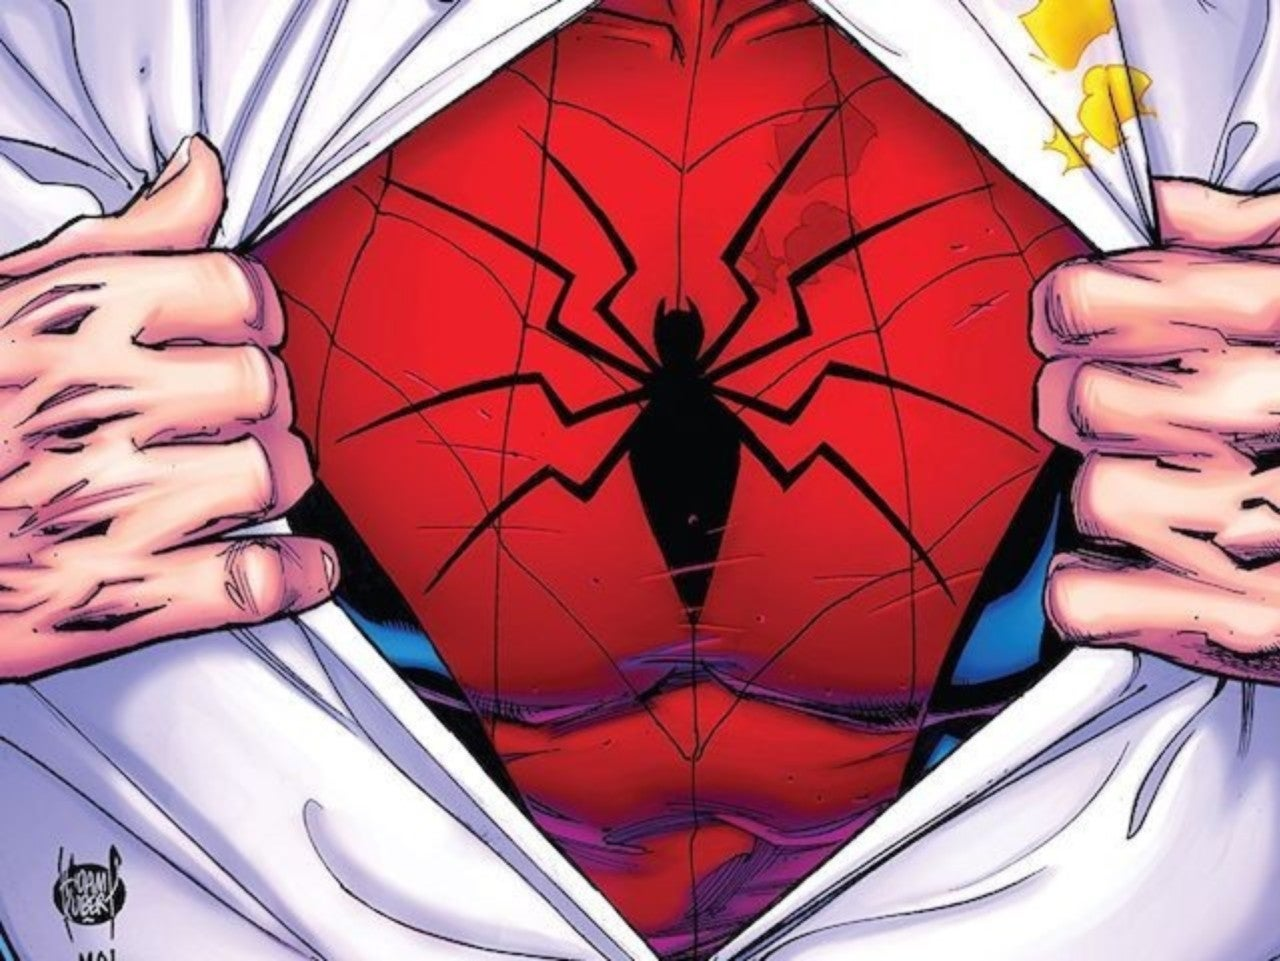 Chip zdarsky leaving the spectacular spider man